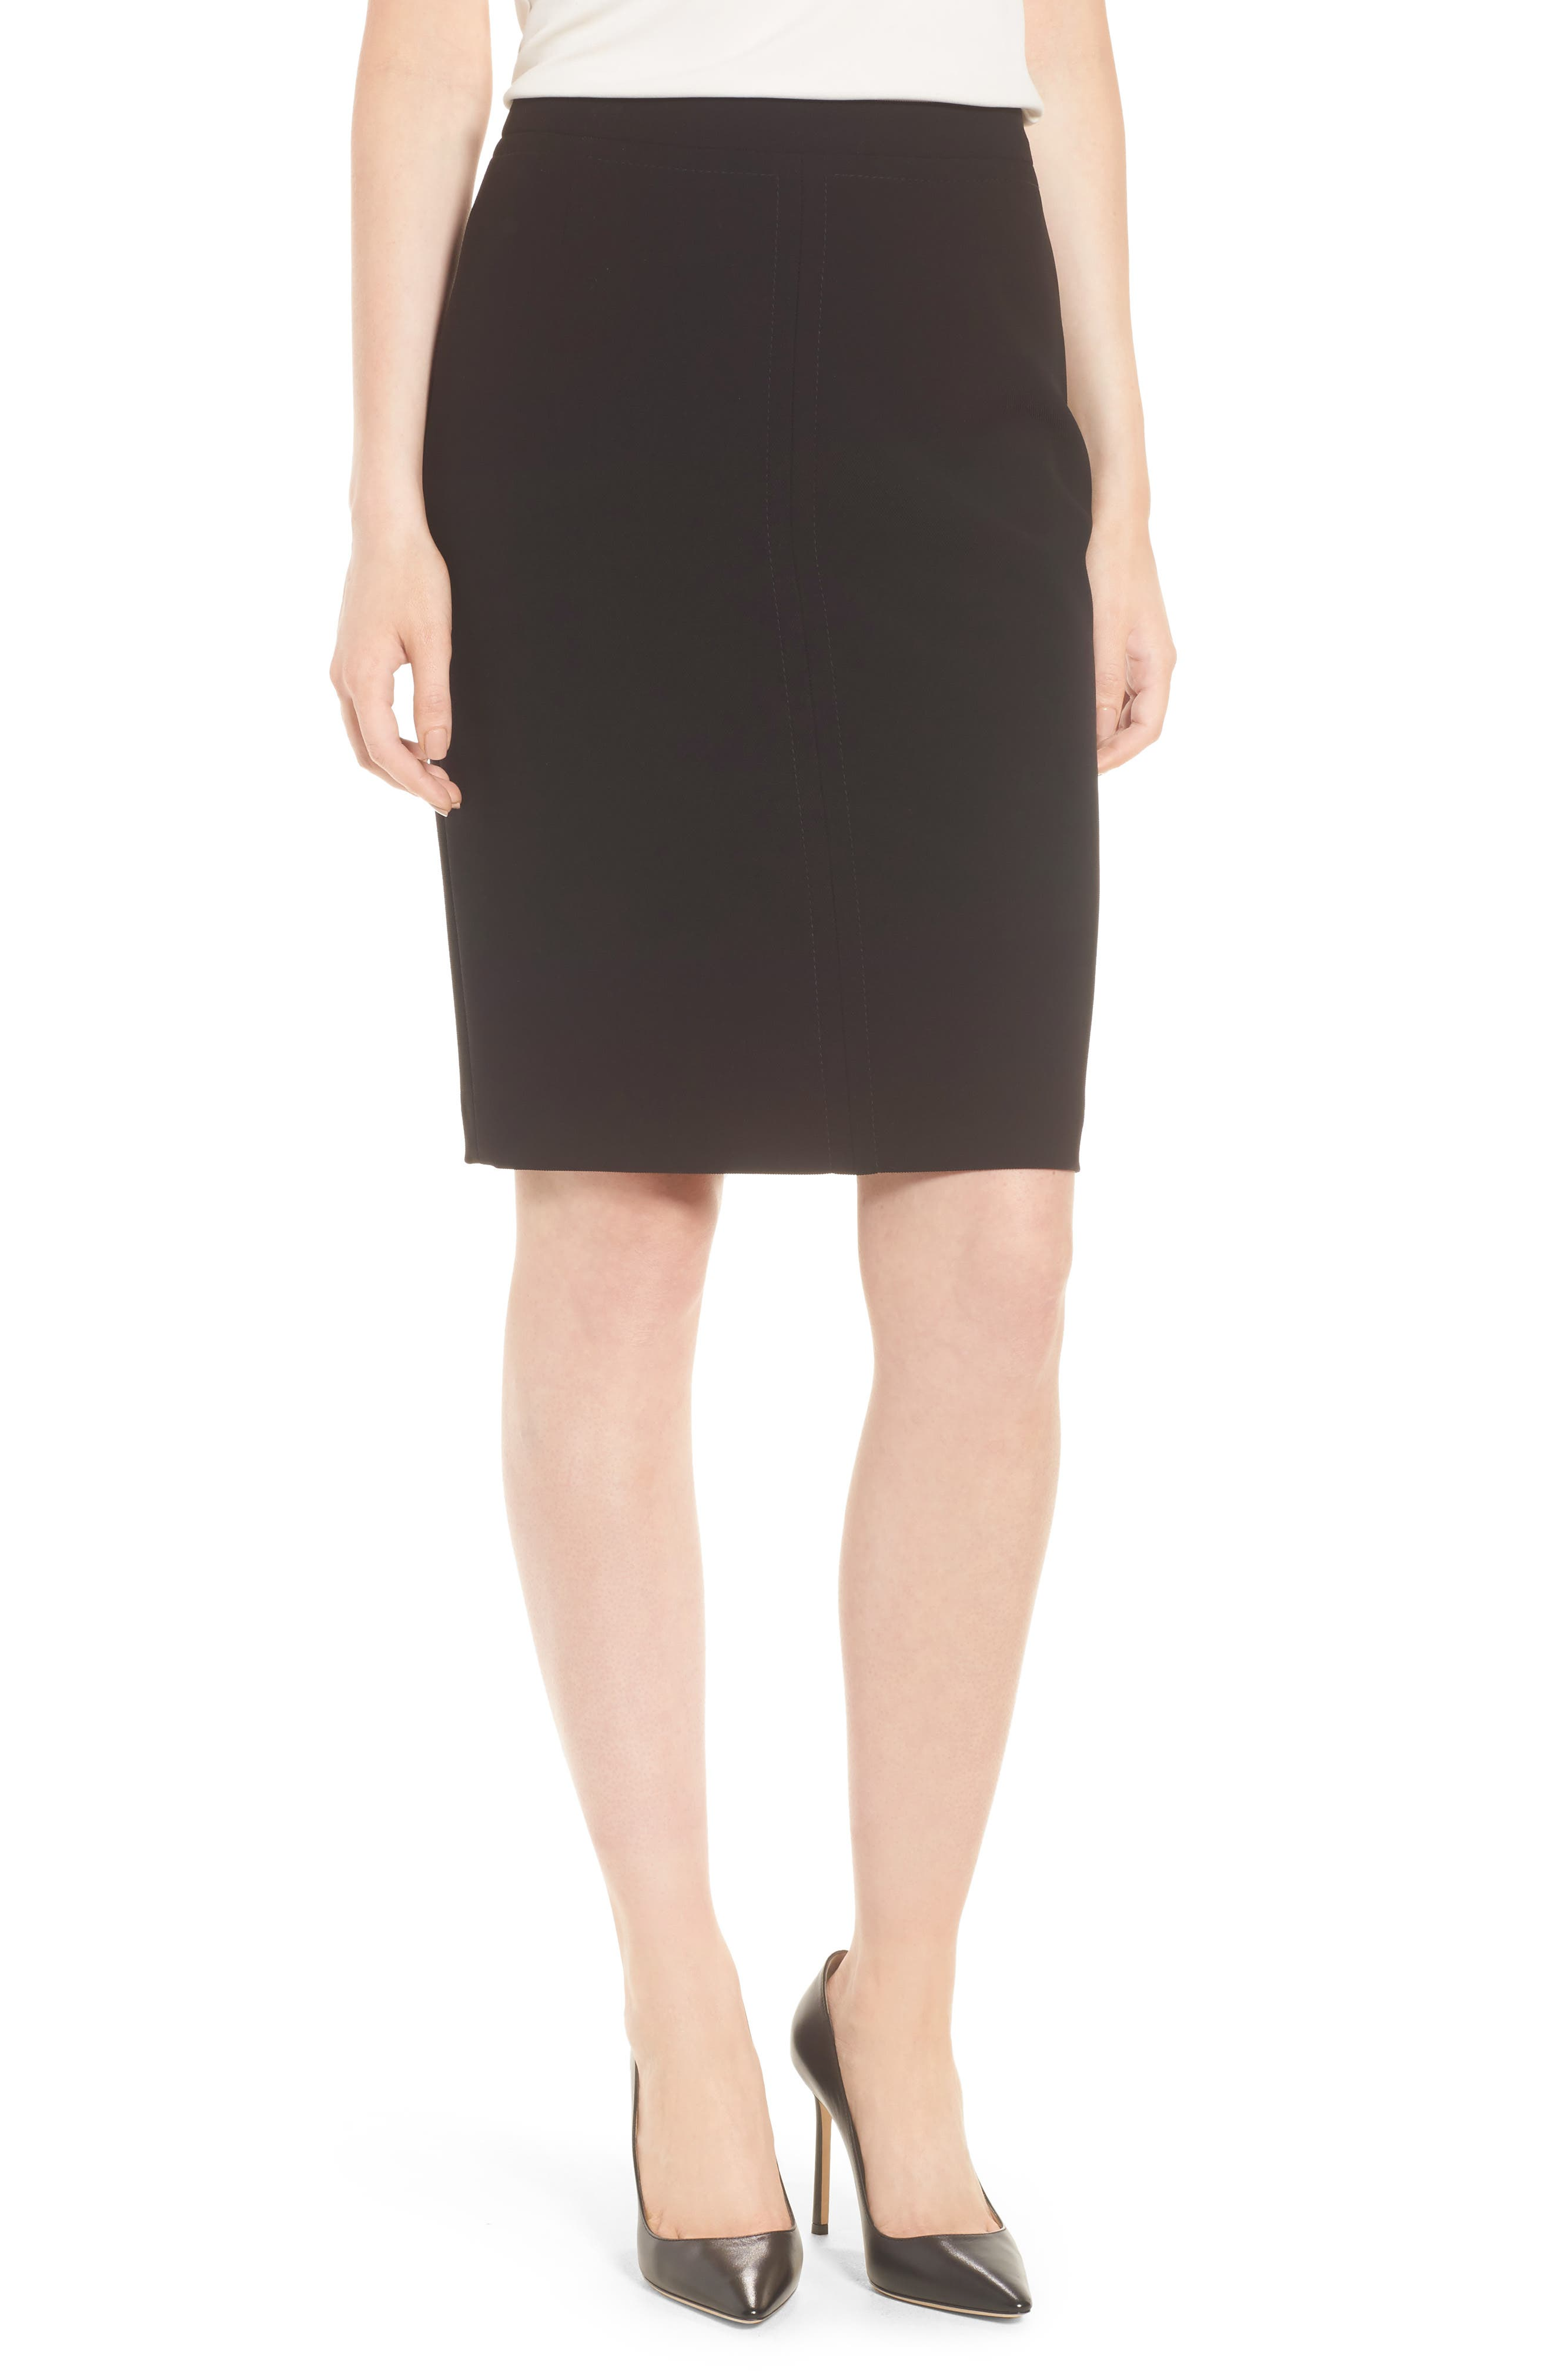 Vuriona Pencil Skirt,                             Main thumbnail 1, color,                             Black